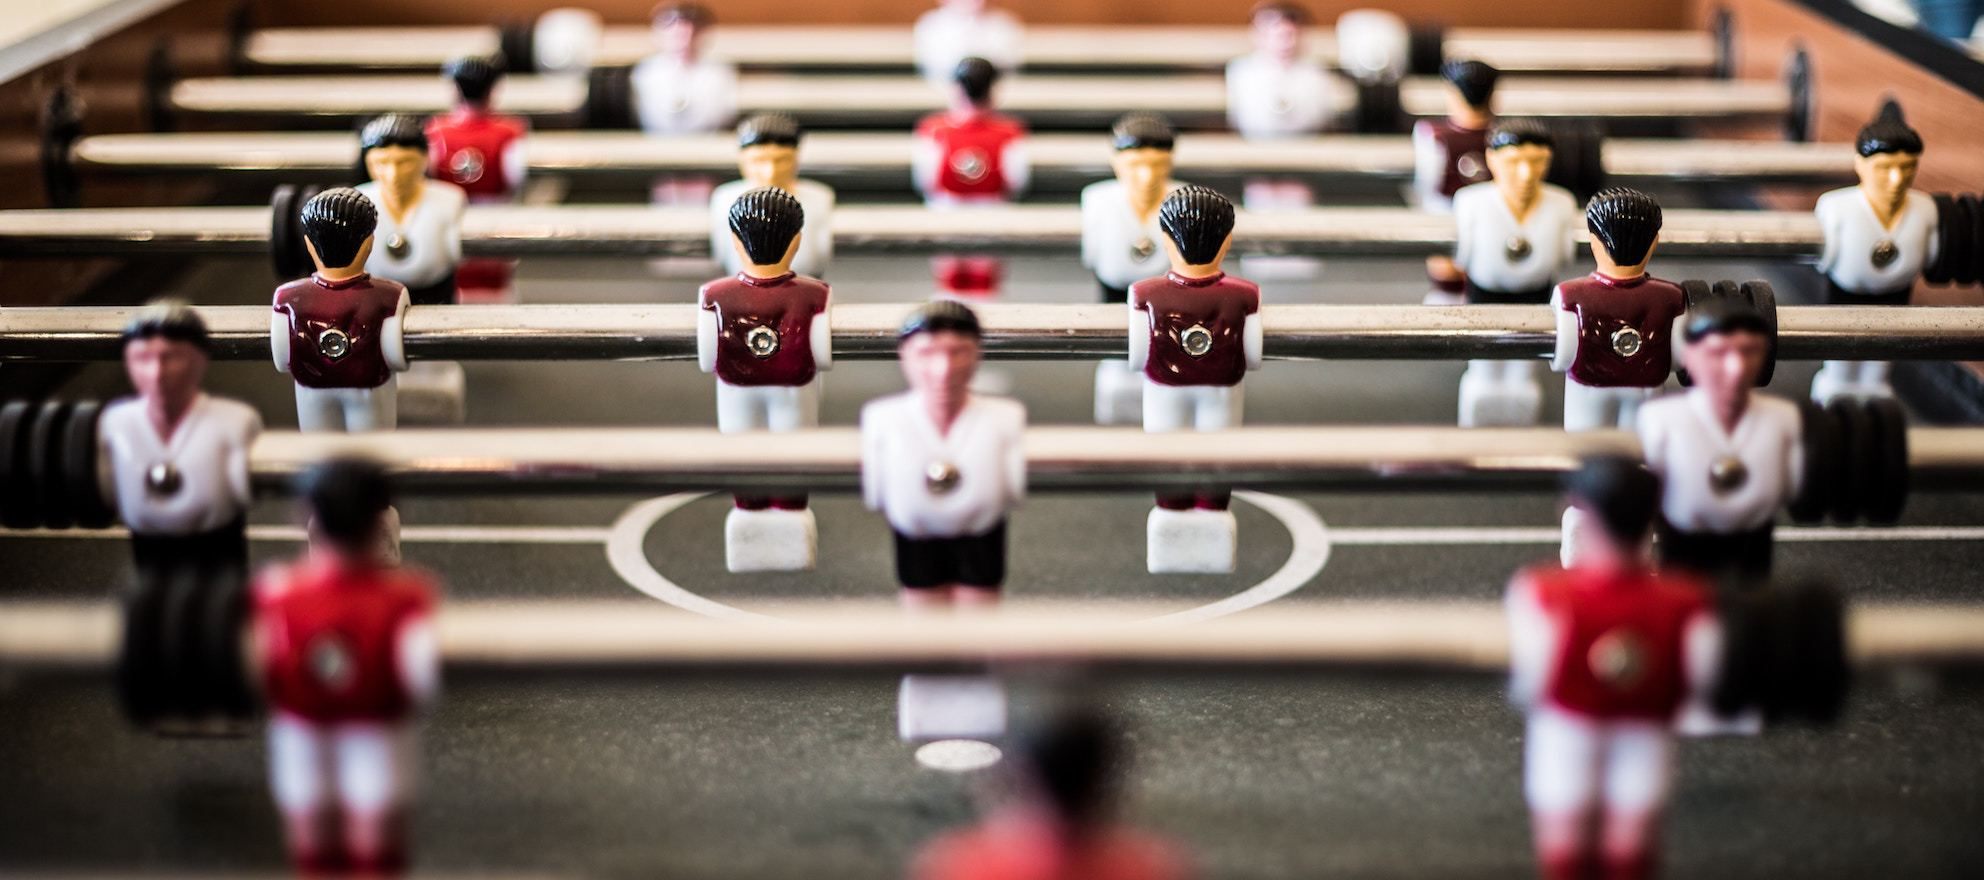 inexpensive recruiting strategies for team leaders